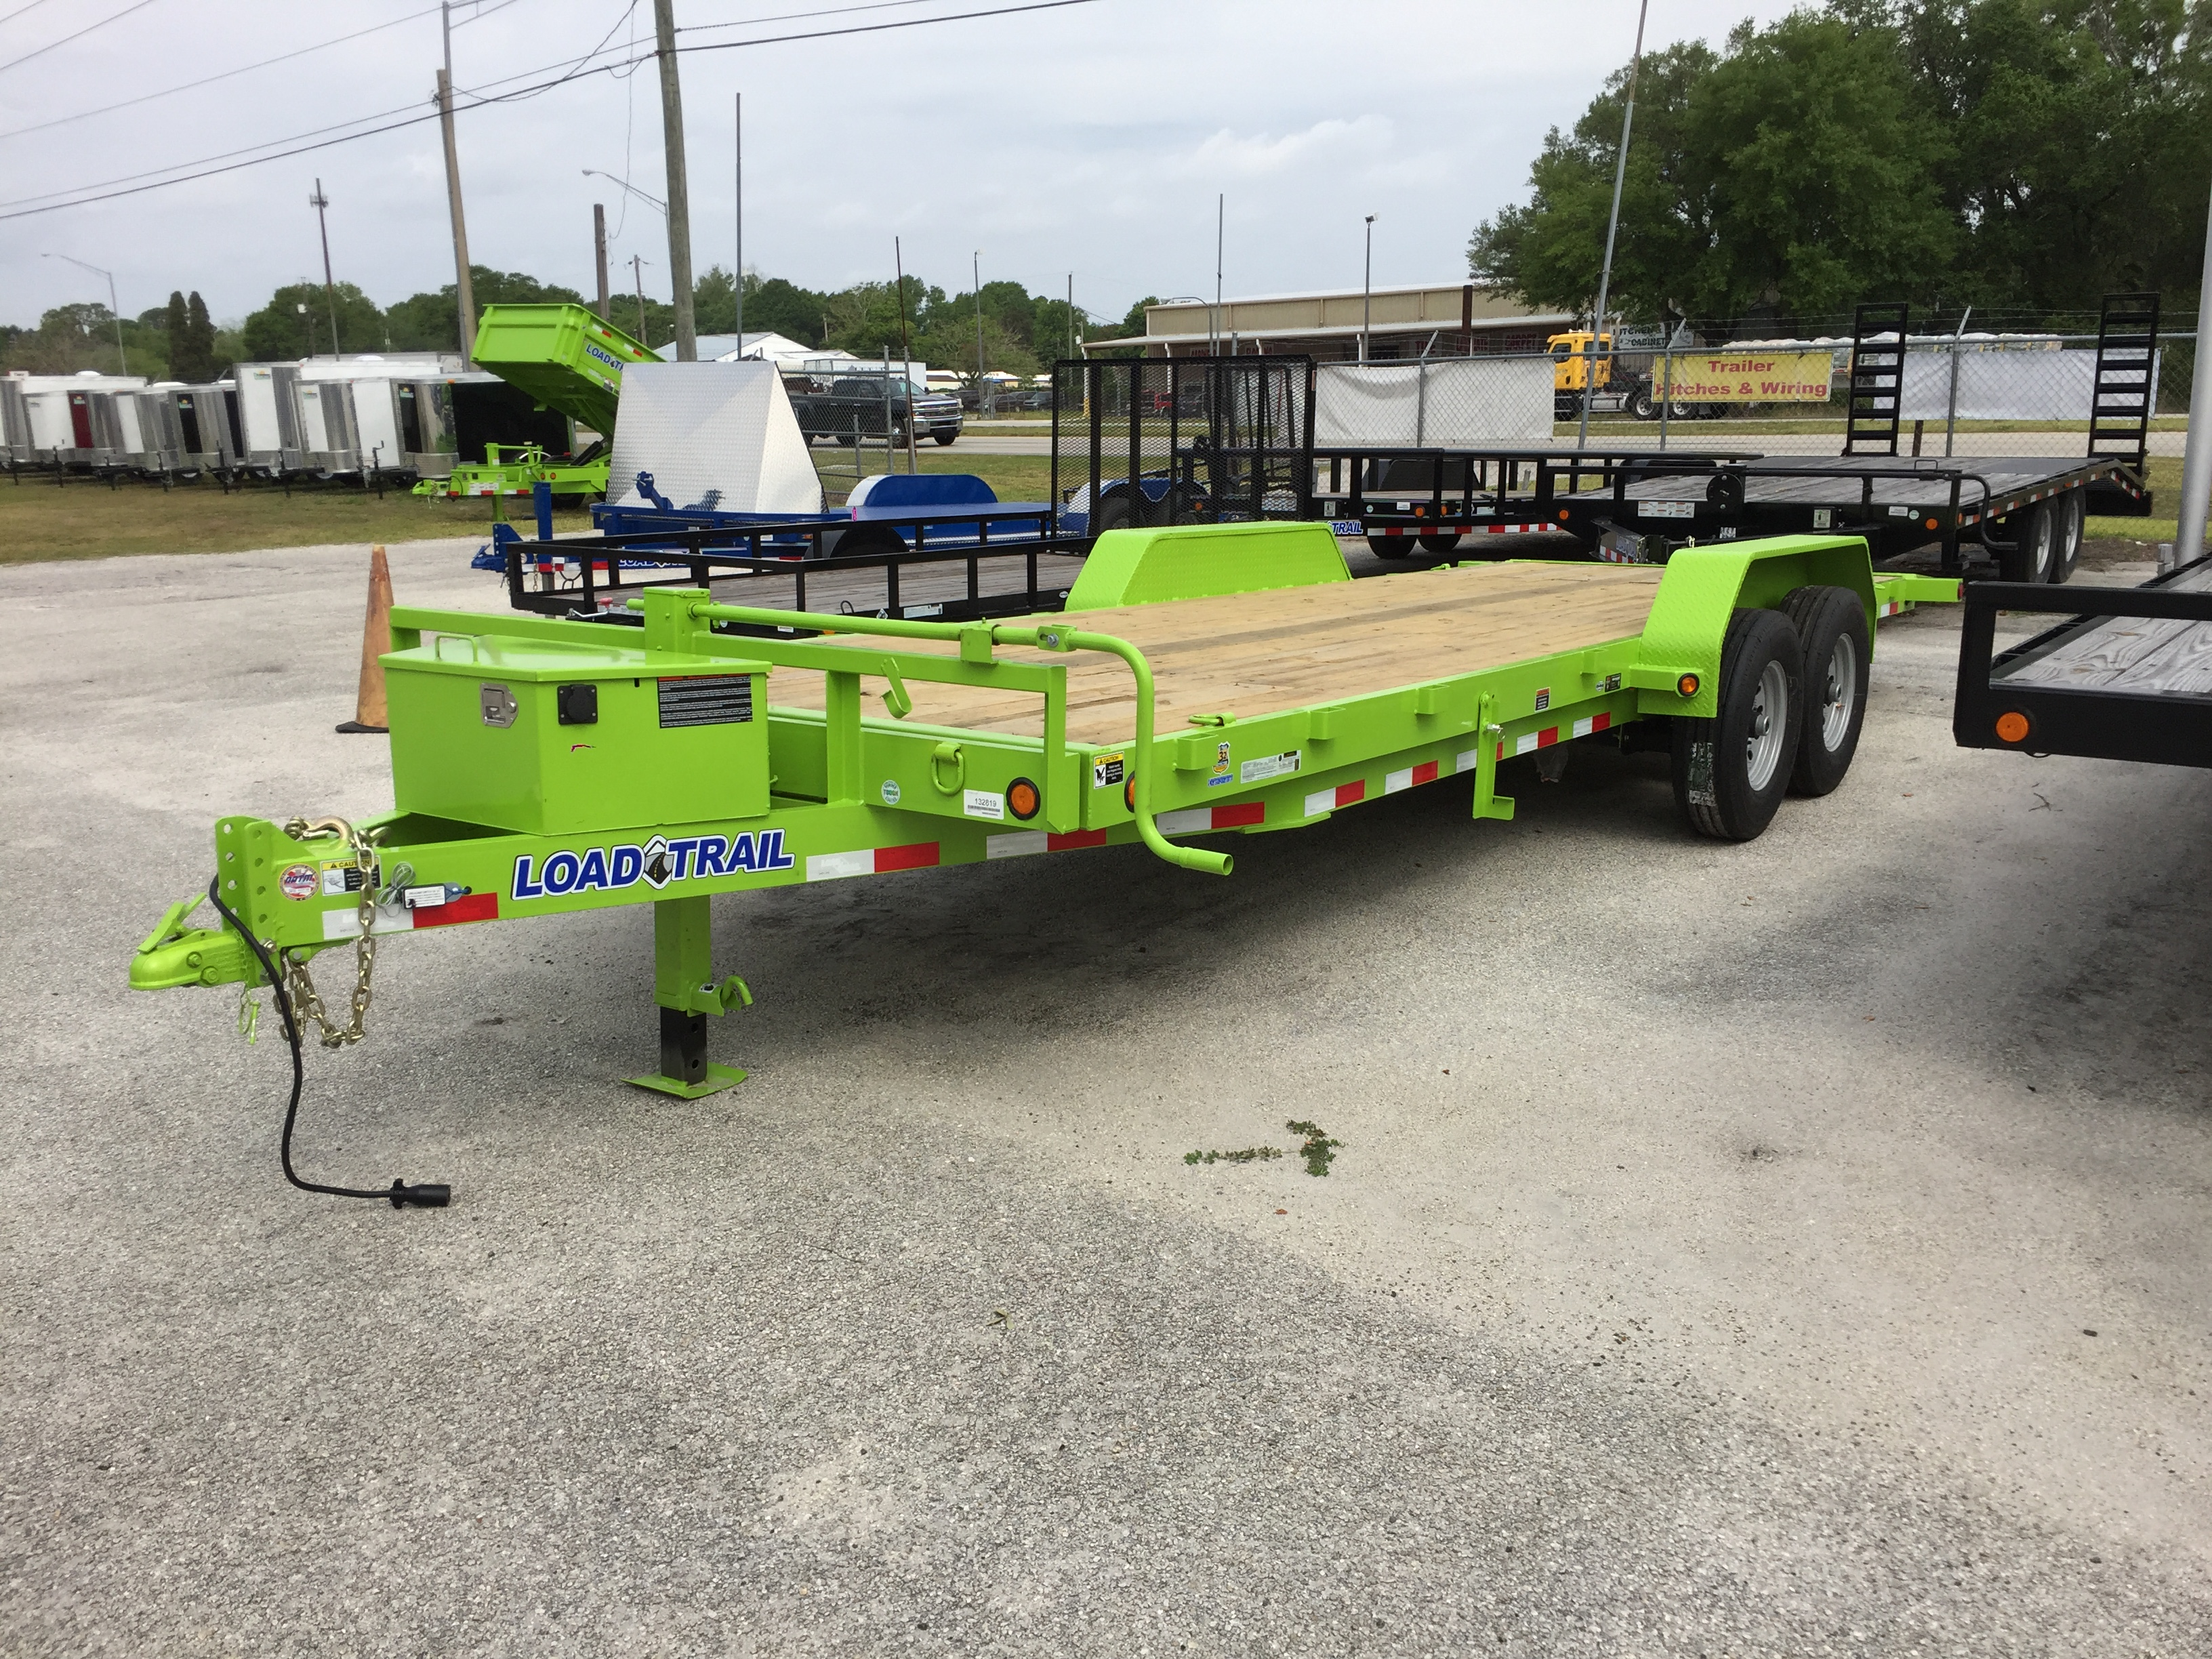 Atv Dealer Lakeland Fl >> Home | Southern Wholesale Trailers | Flatbed, Dump, Utility, and Cargo Trailers For Sale in ...